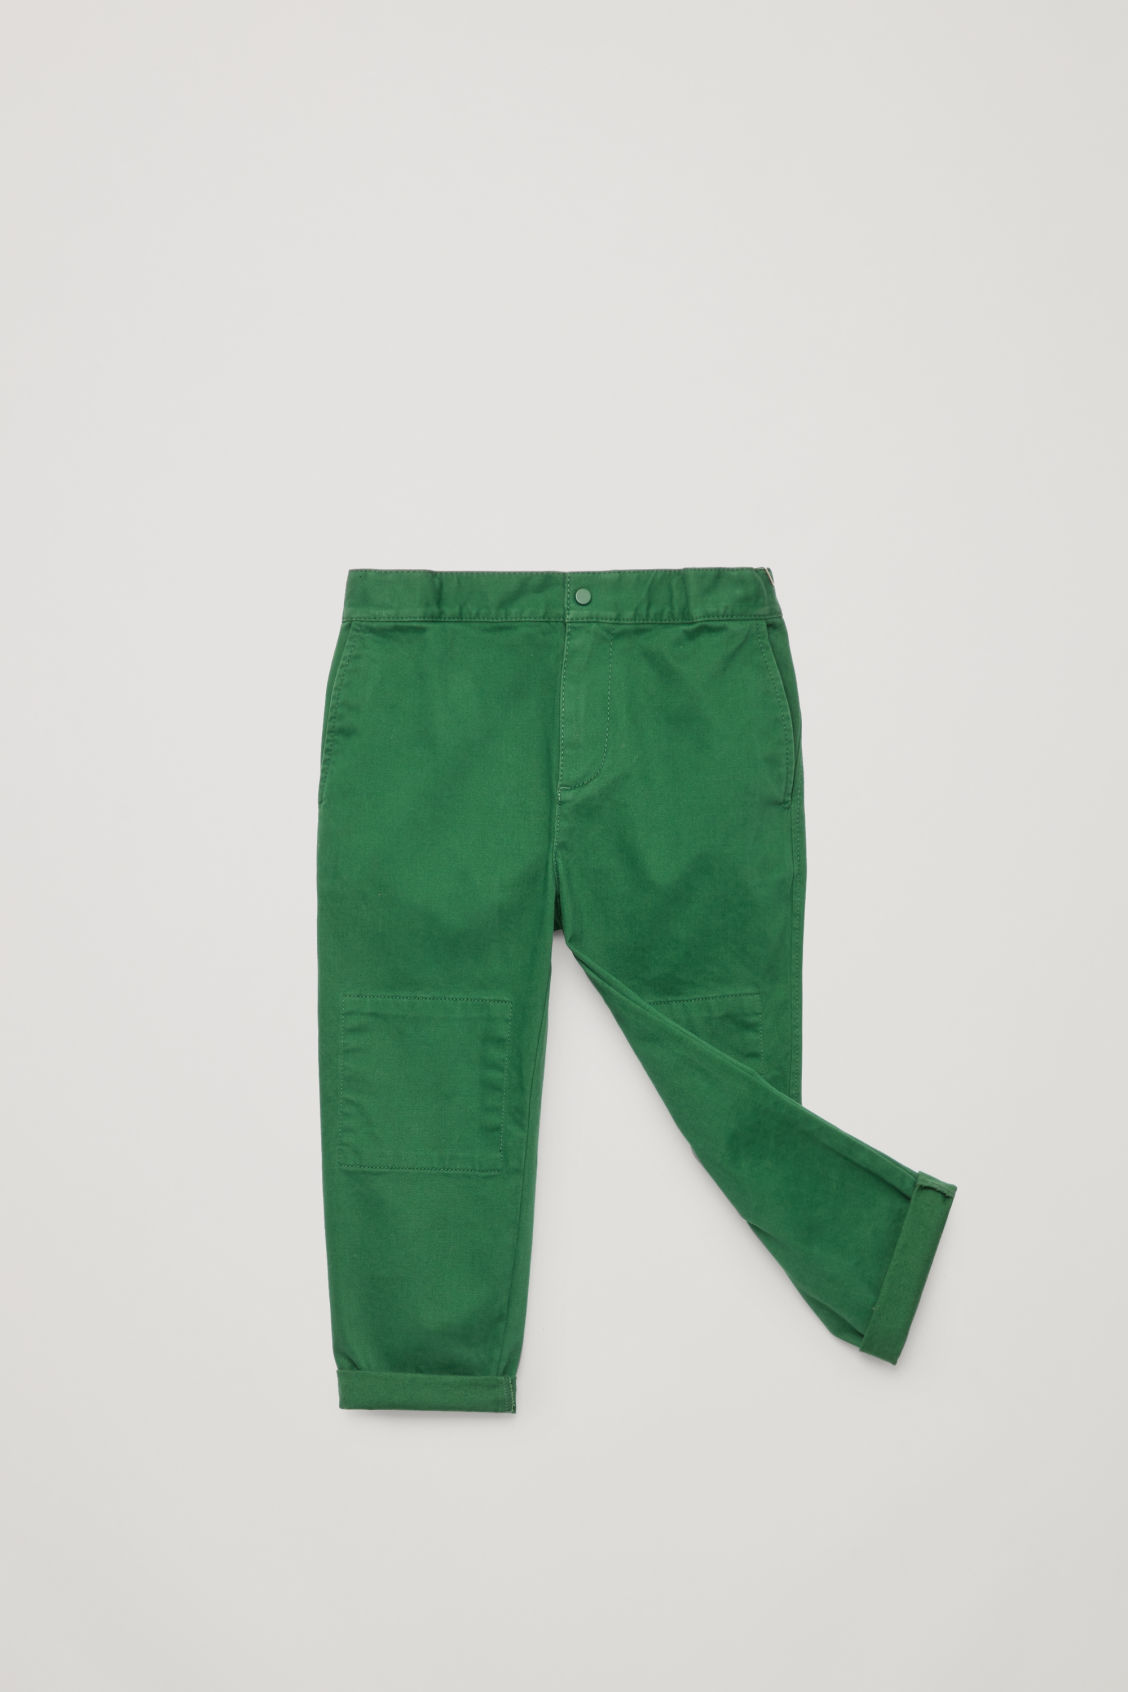 Detailed image of Cos patch-pocket cotton trousers in green